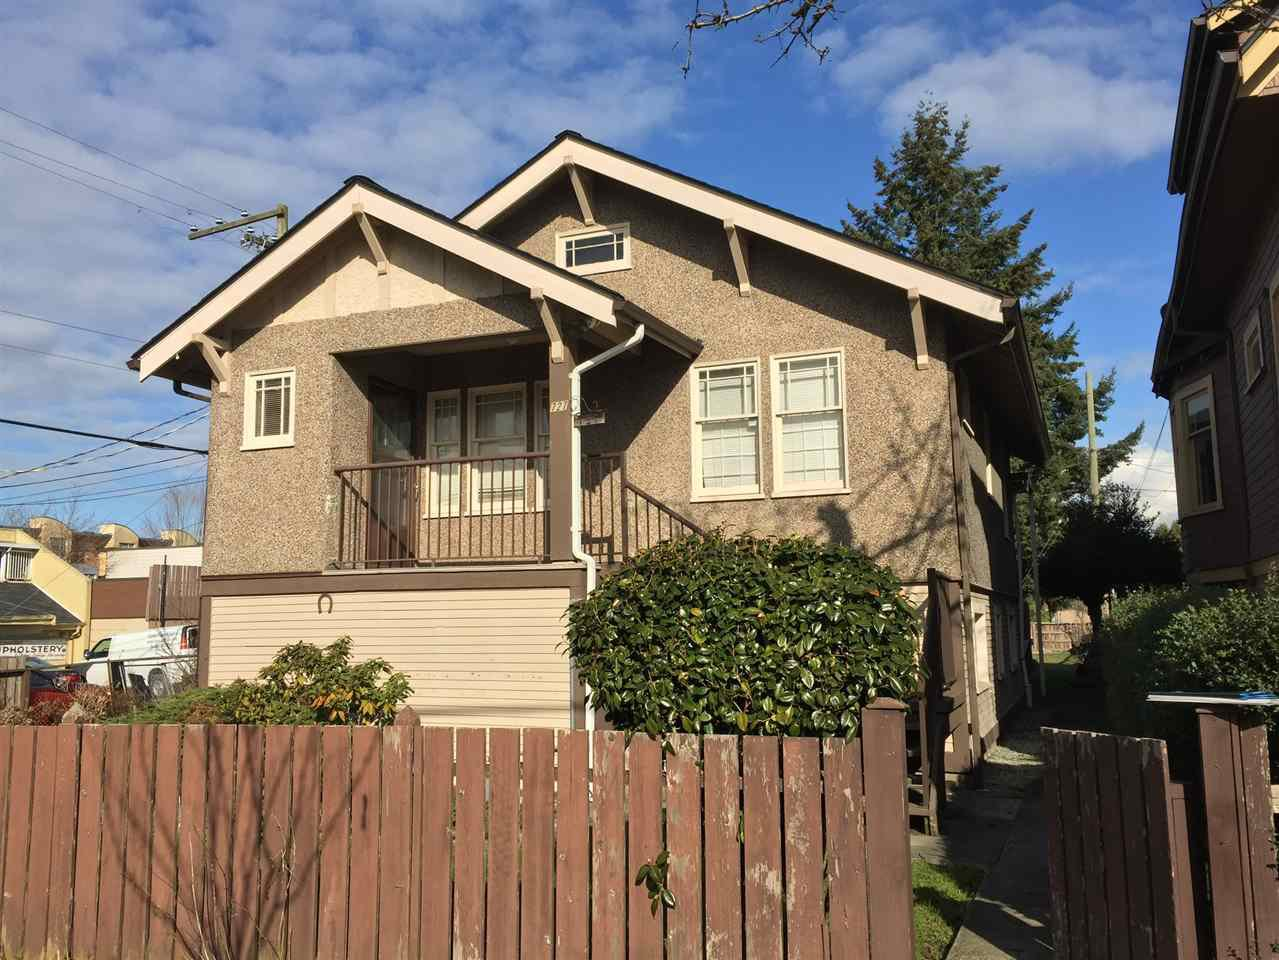 Main Photo: 727 E 26 Avenue in Vancouver: Fraser VE House for sale (Vancouver East)  : MLS®# R2143519